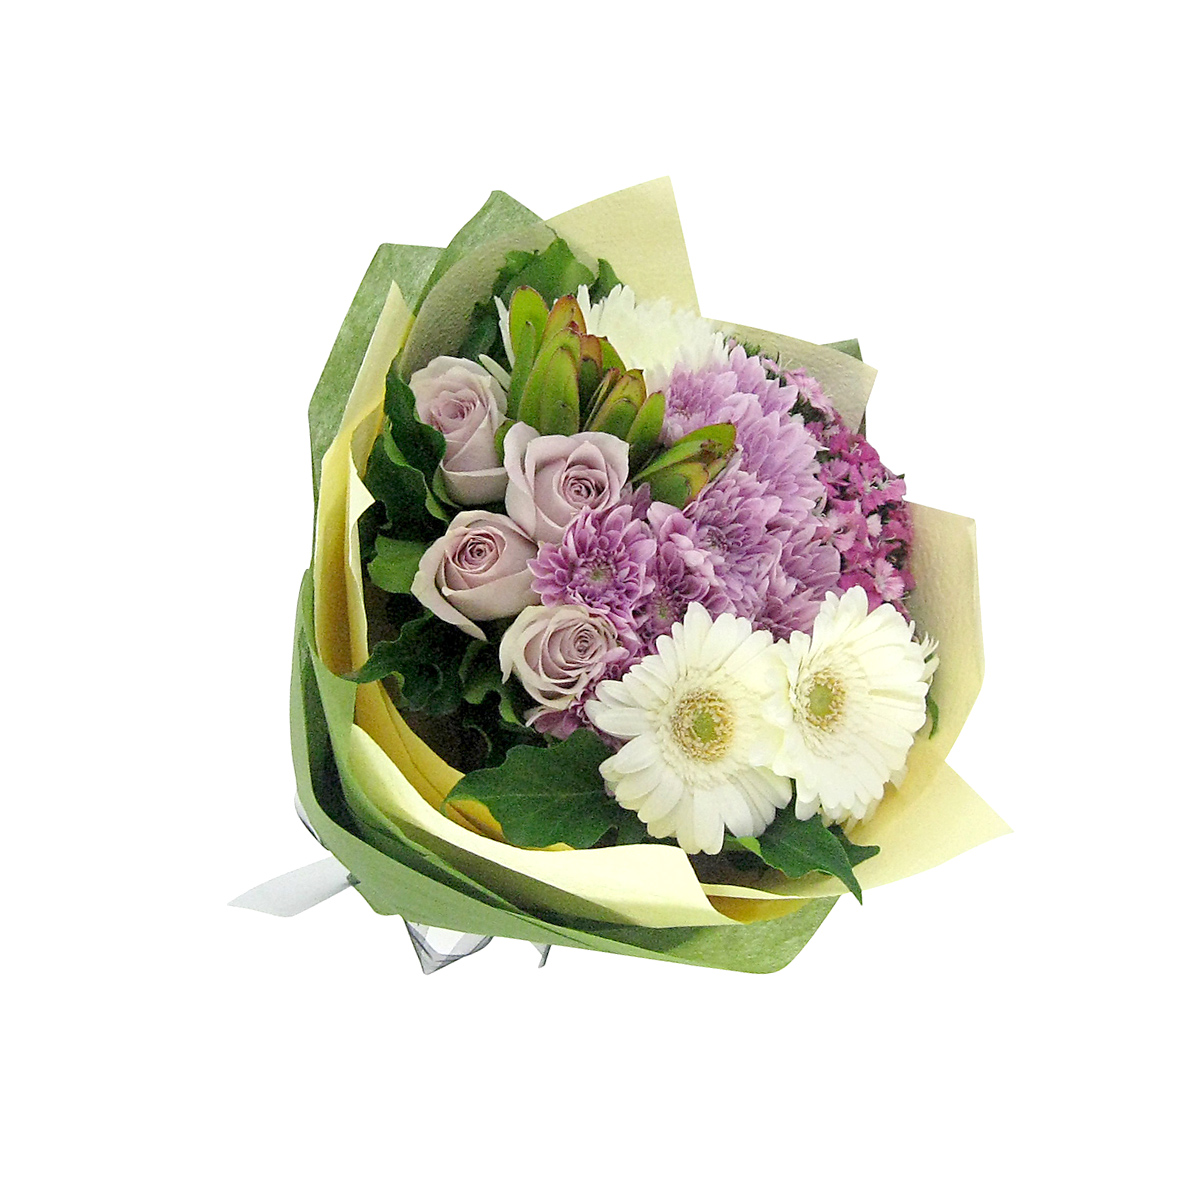 Flower delivery sydney sydney flowers from just 25 petite posies izmirmasajfo